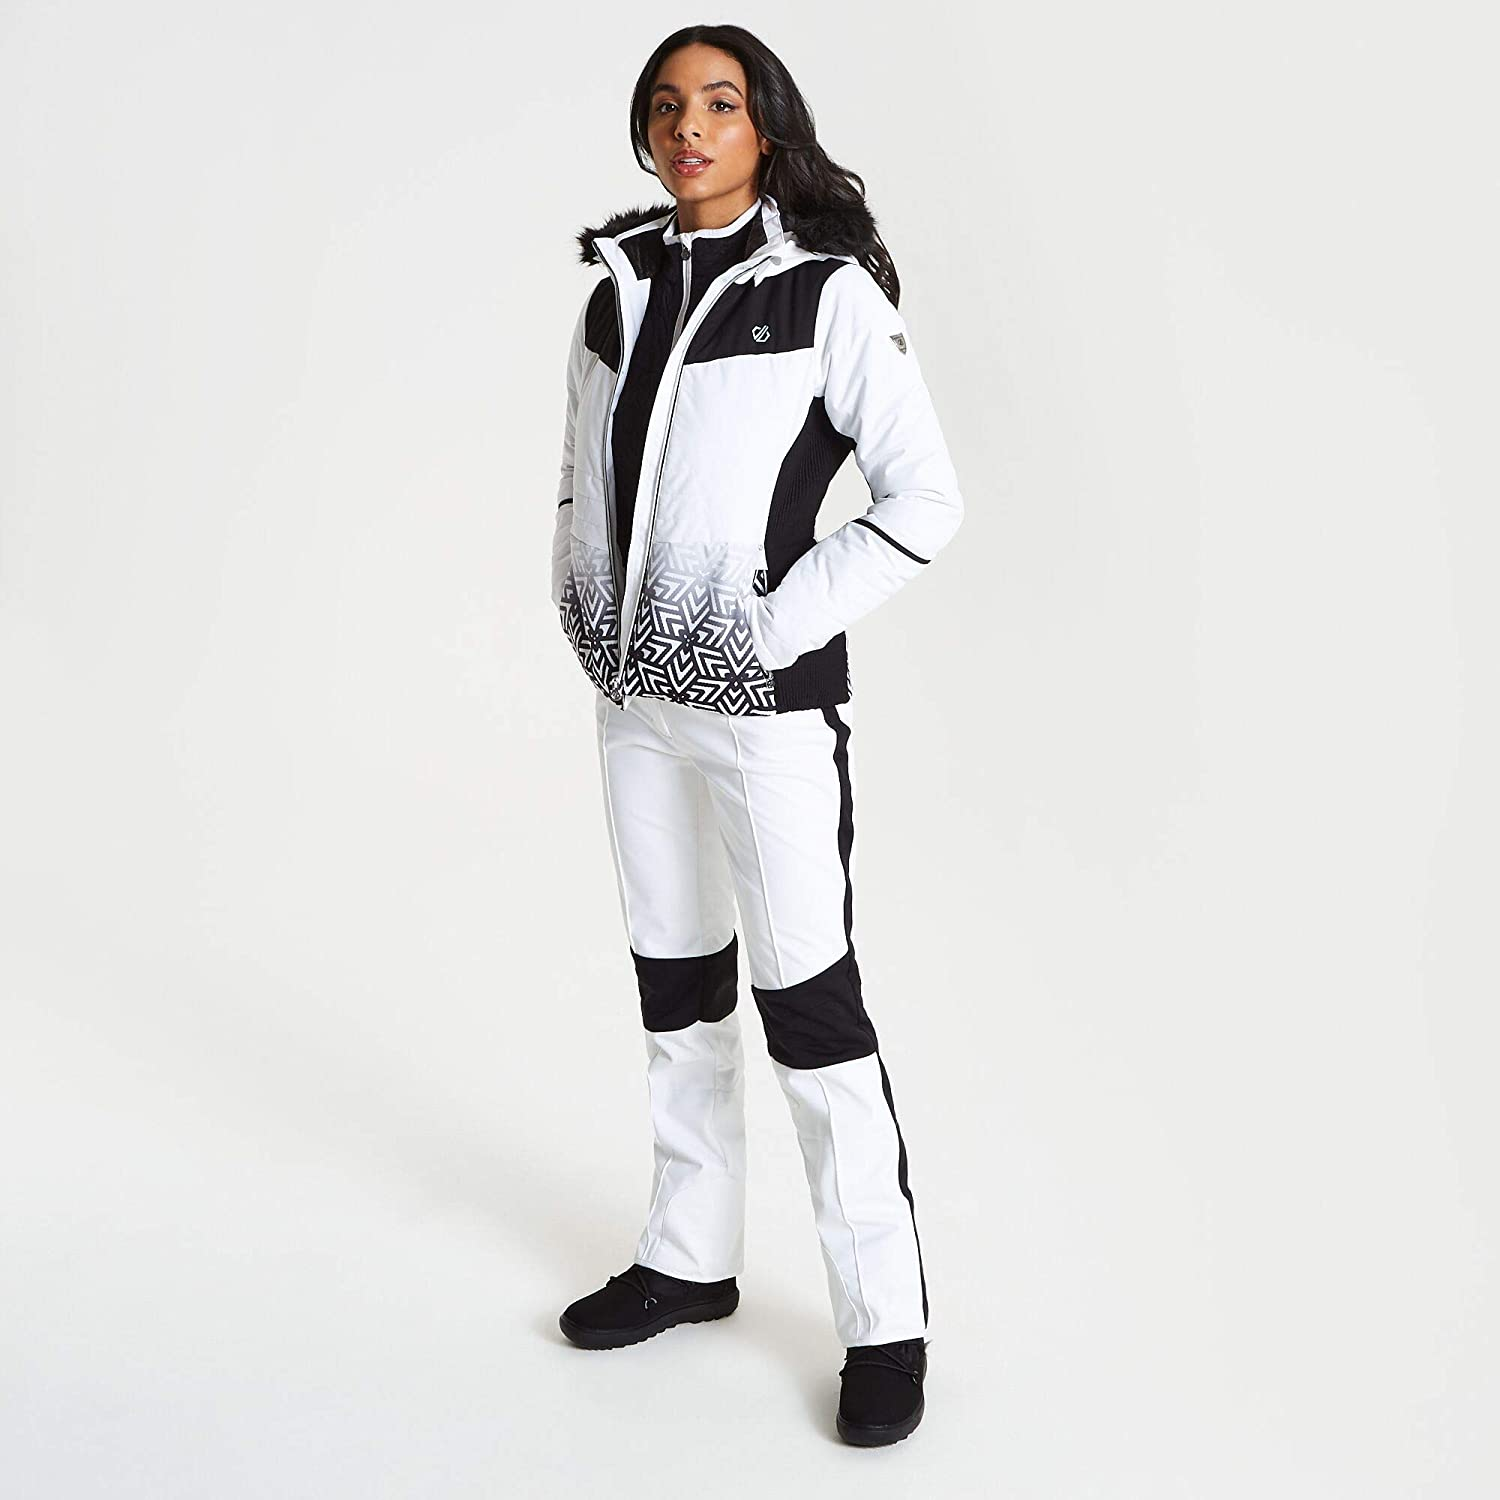 Giacca Impermeabile Dare 2B Iceglaze Waterproof /& Breathable High Loft Insulated Faux Fur Hooded Ski /& Snowboard Jacket with Detachable Snowskirt And Headphone Port Isolante Donna